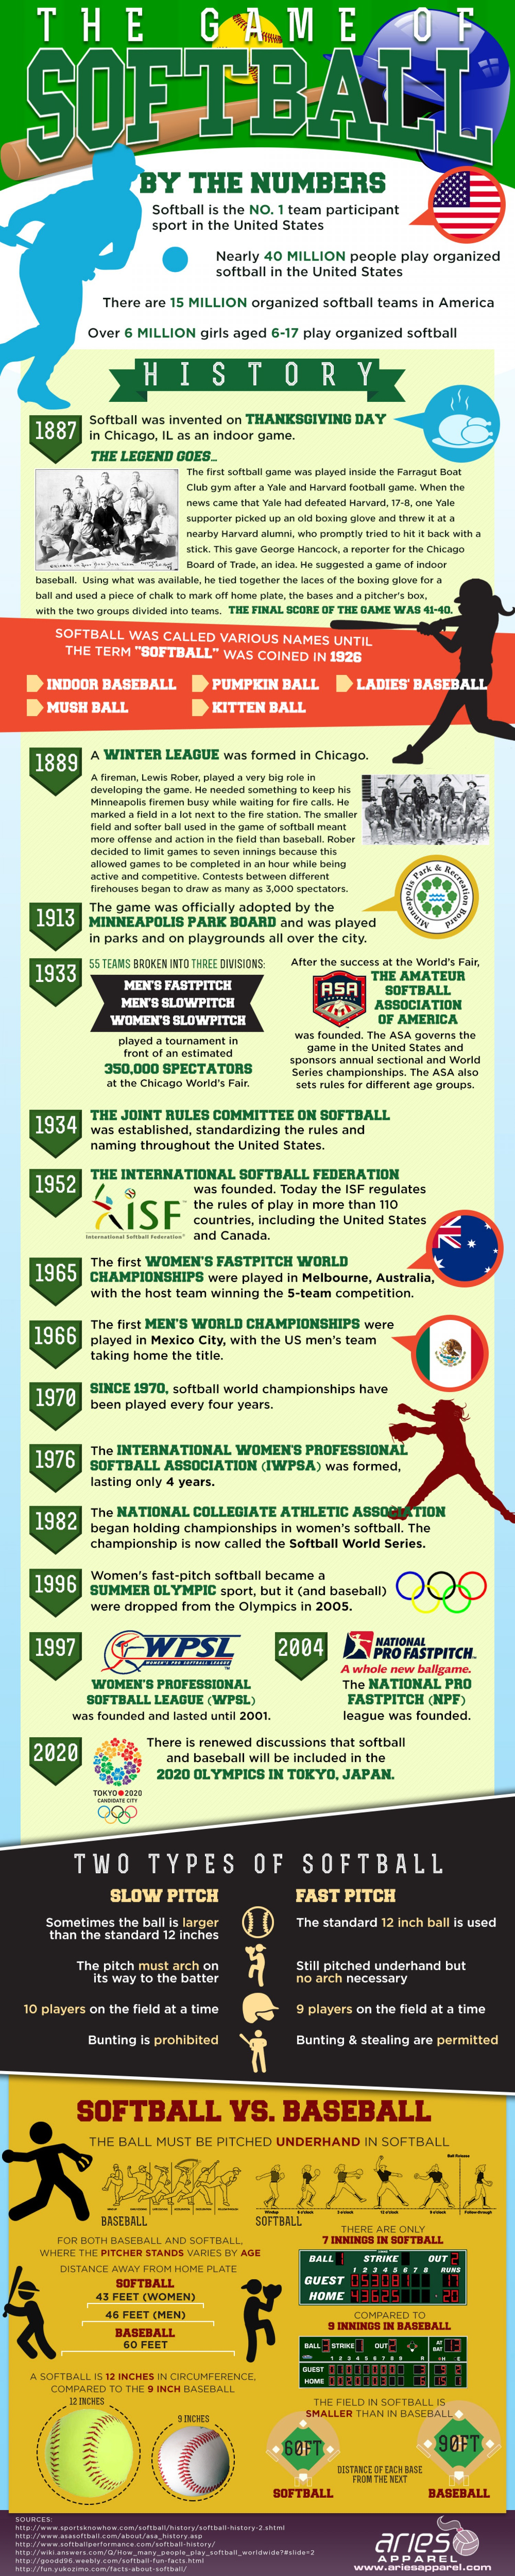 the-history-of-softball--thumbnail_535fd66ecfd35_w1500.png